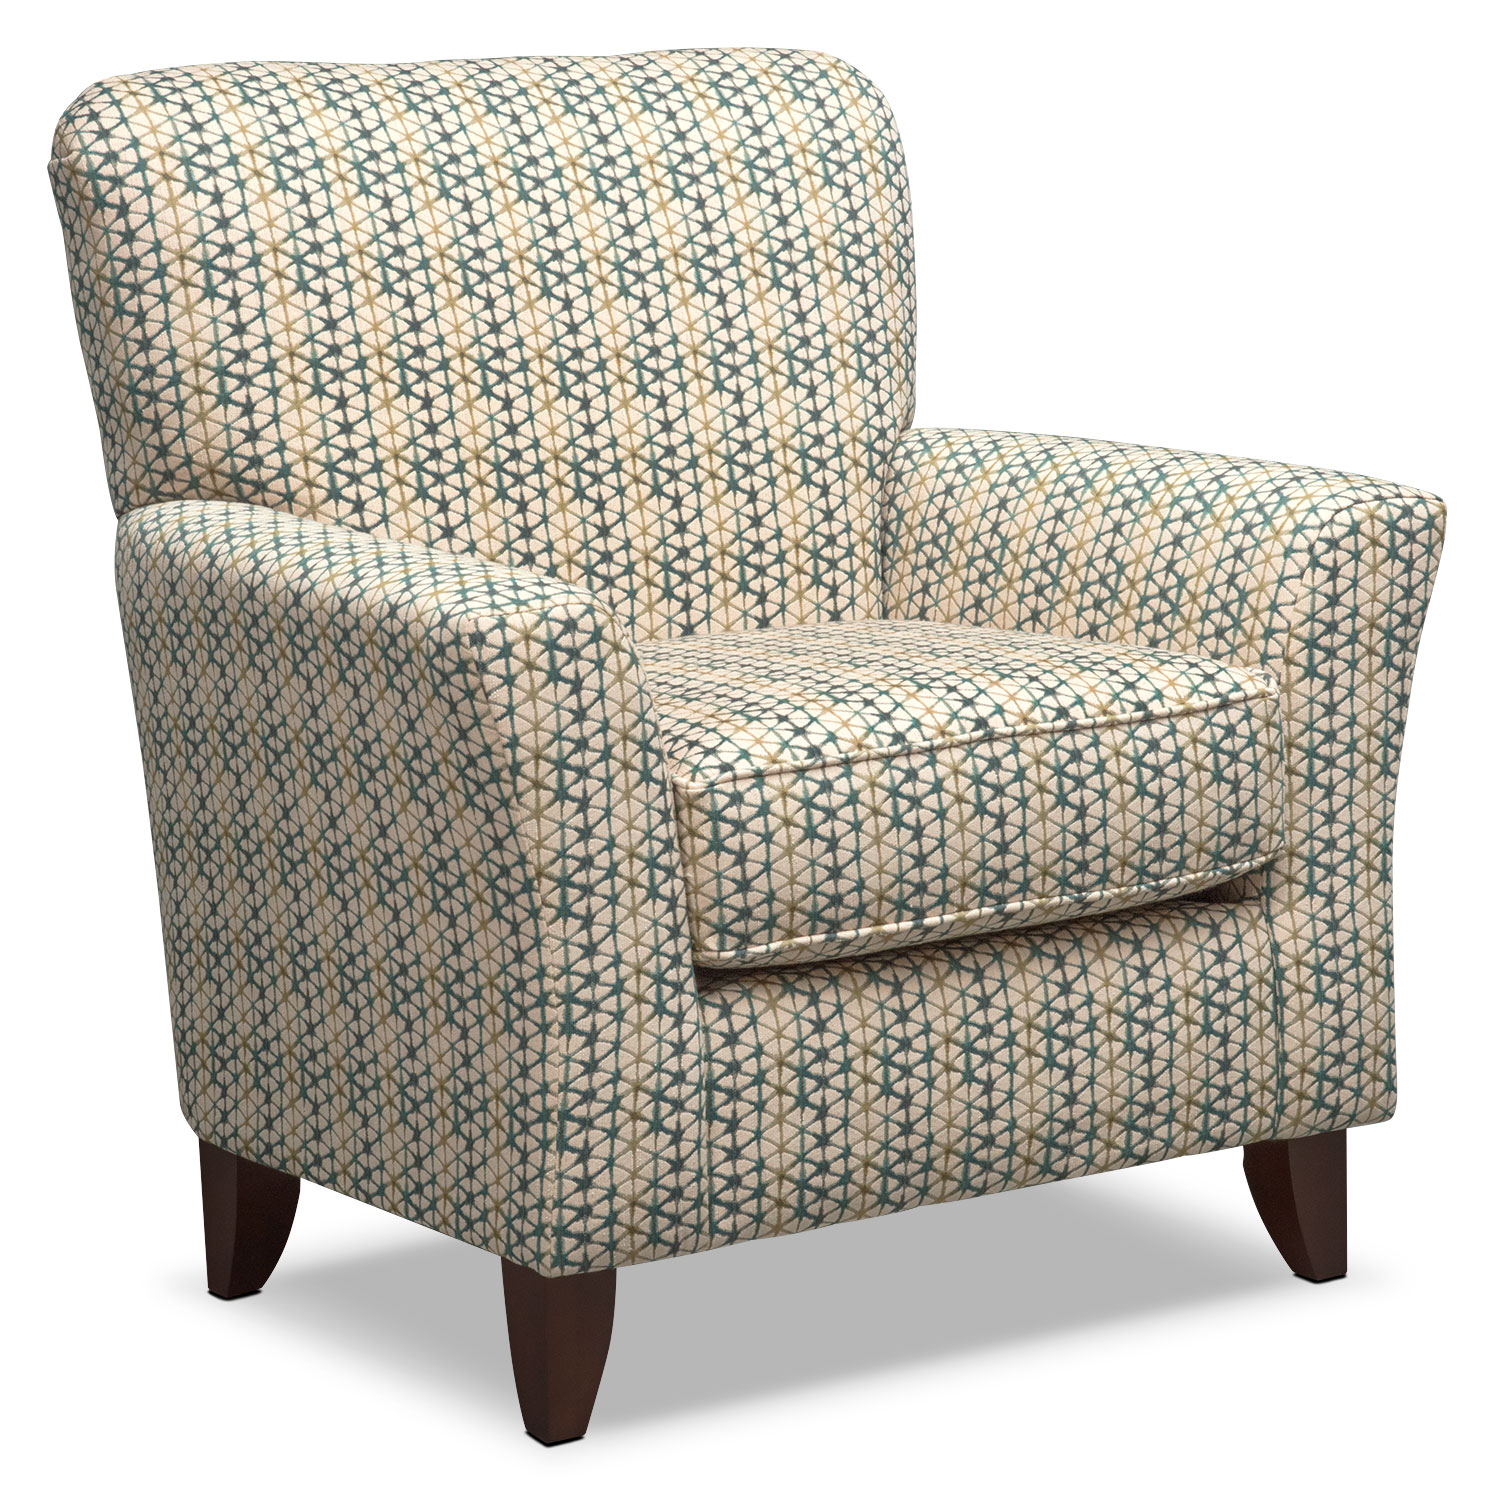 Bryden Accent Chair | Value City Furniture and Mattresses